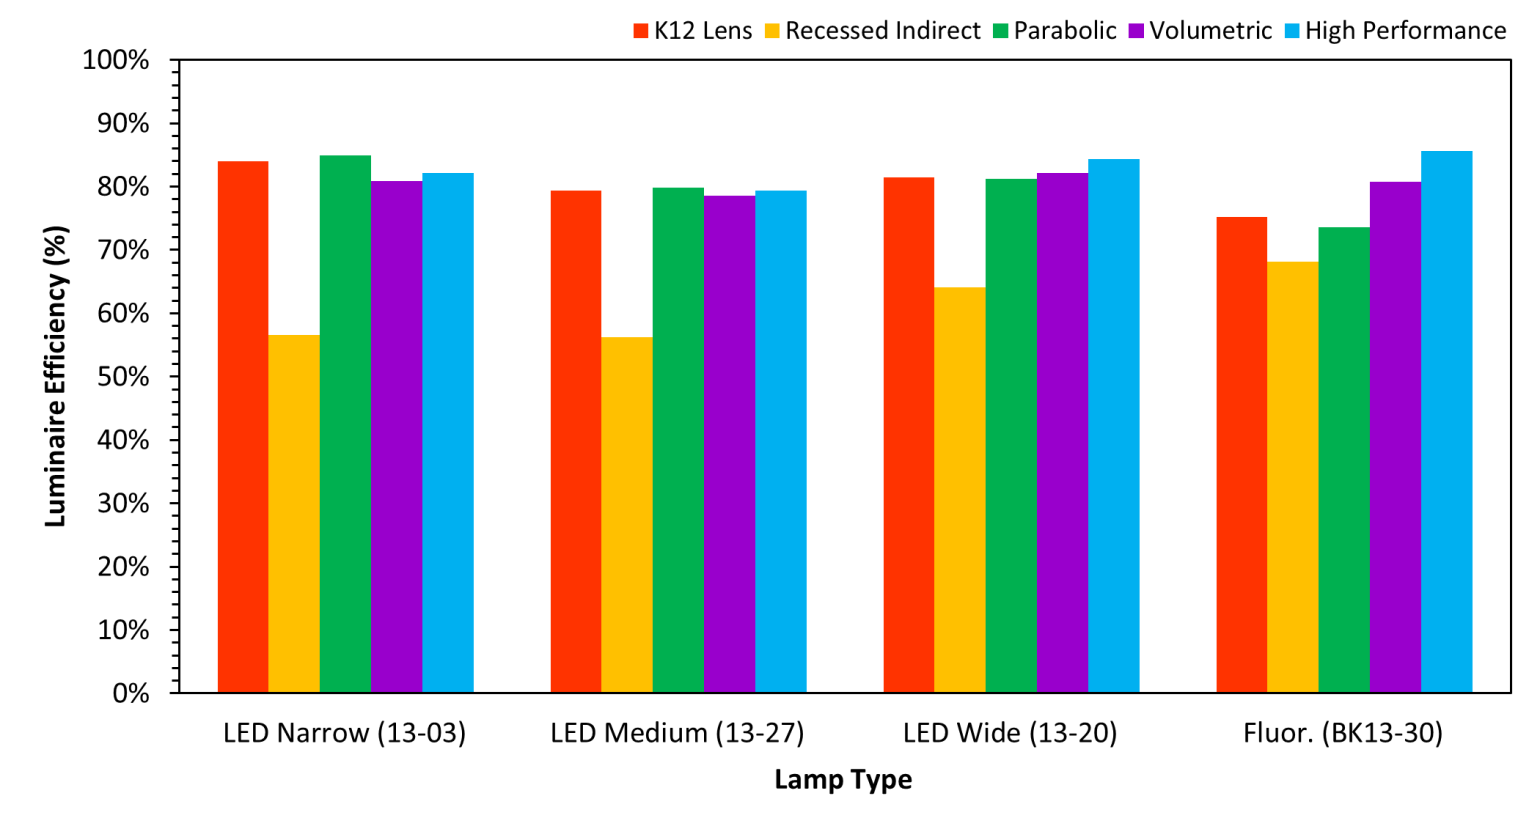 Figure 8. Luminaire efficiency (%) by lamp and troffer type. Another important note about luminaire efficiency is the role of ambient temperature on the performance of both LED and fluorescent lamps.